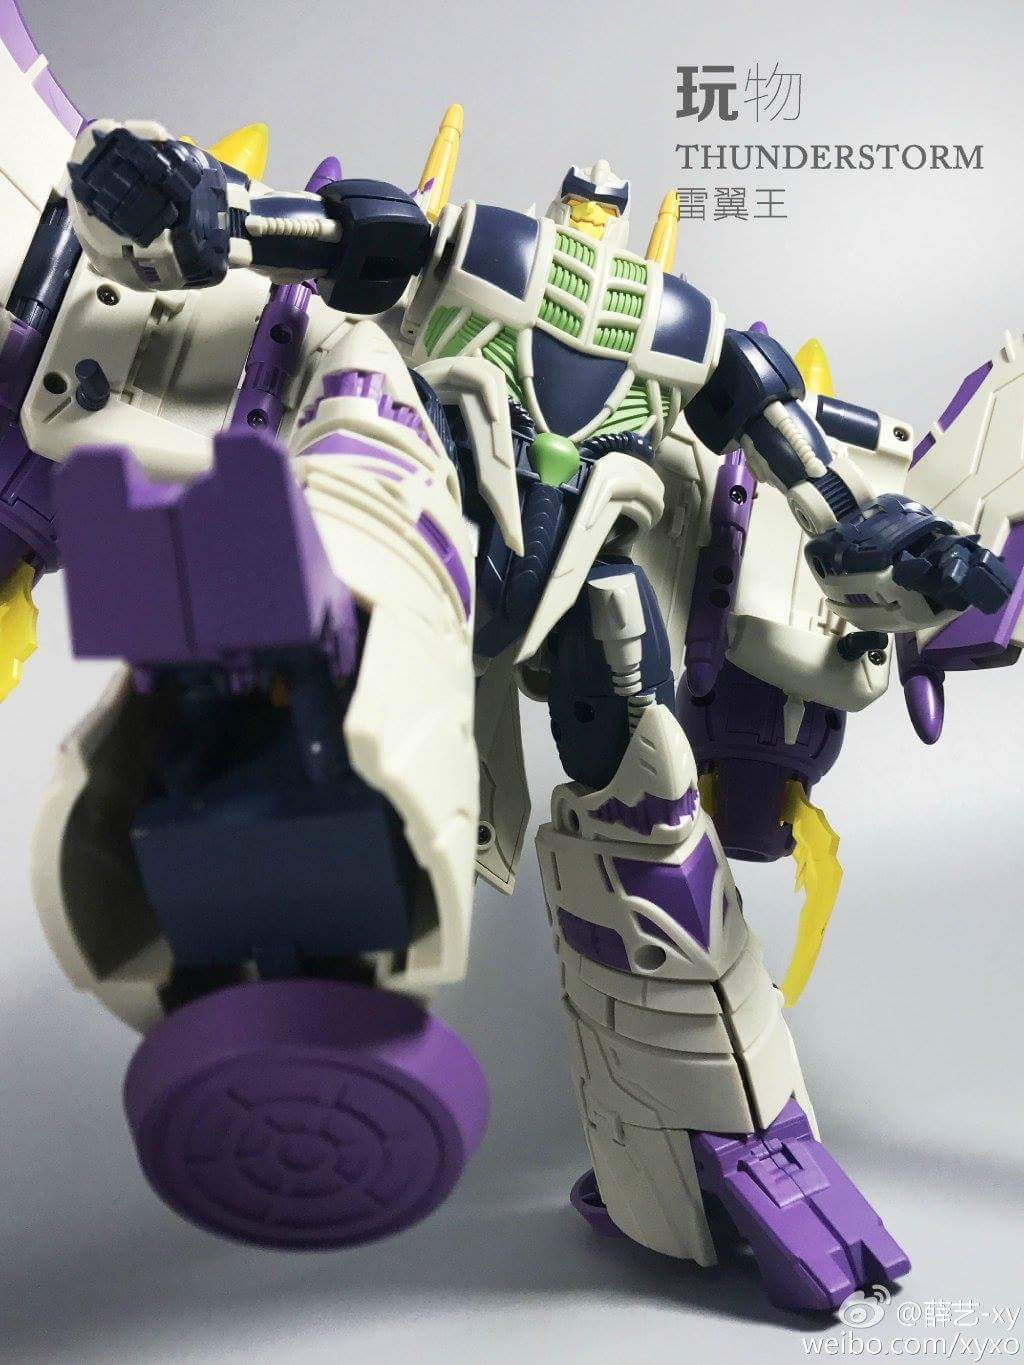 [Garatron] Produit Tiers - Gand of Devils G.O.D-01 Thunderstorm - aka Thunderwing des BD TF d'IDW - Page 2 T9uLOd7B